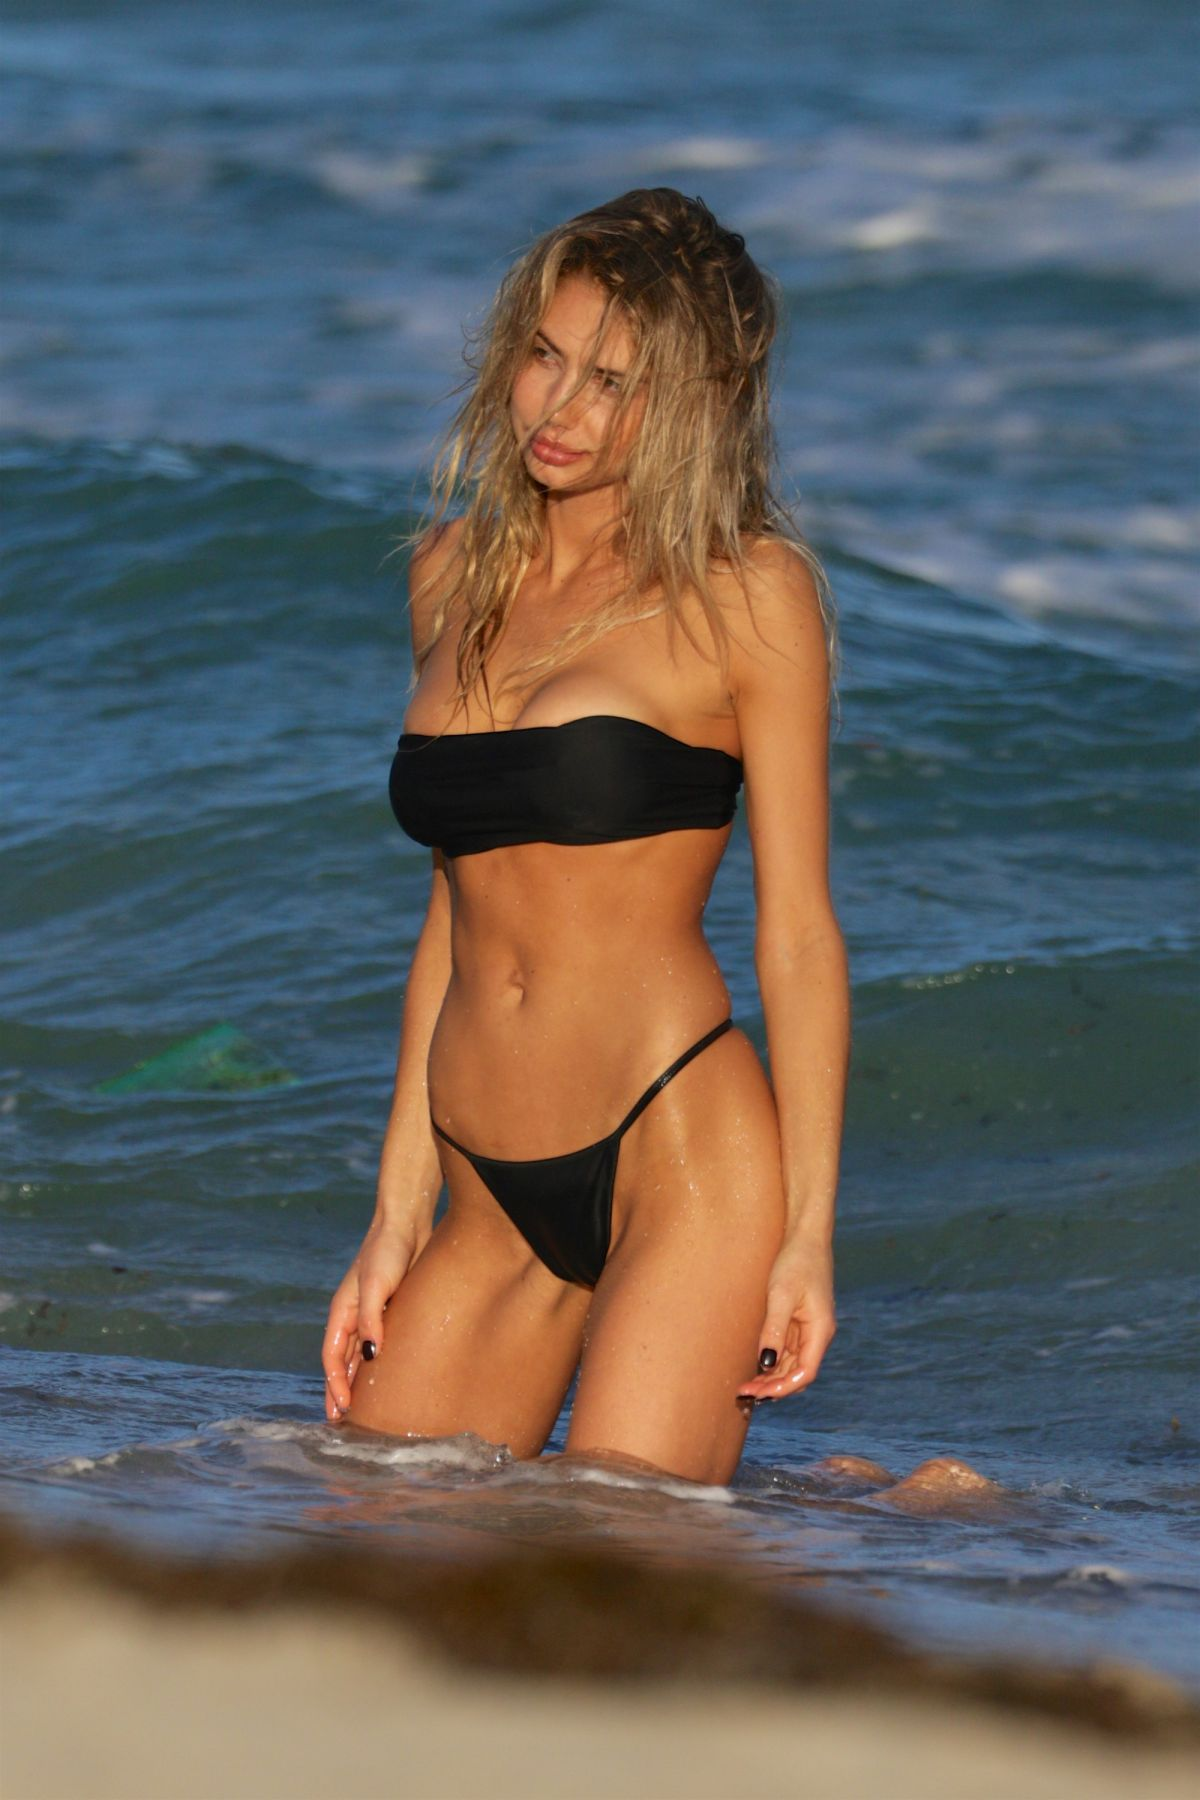 Cleavage Sahara Ray nudes (24 photos), Tits, Hot, Feet, swimsuit 2019